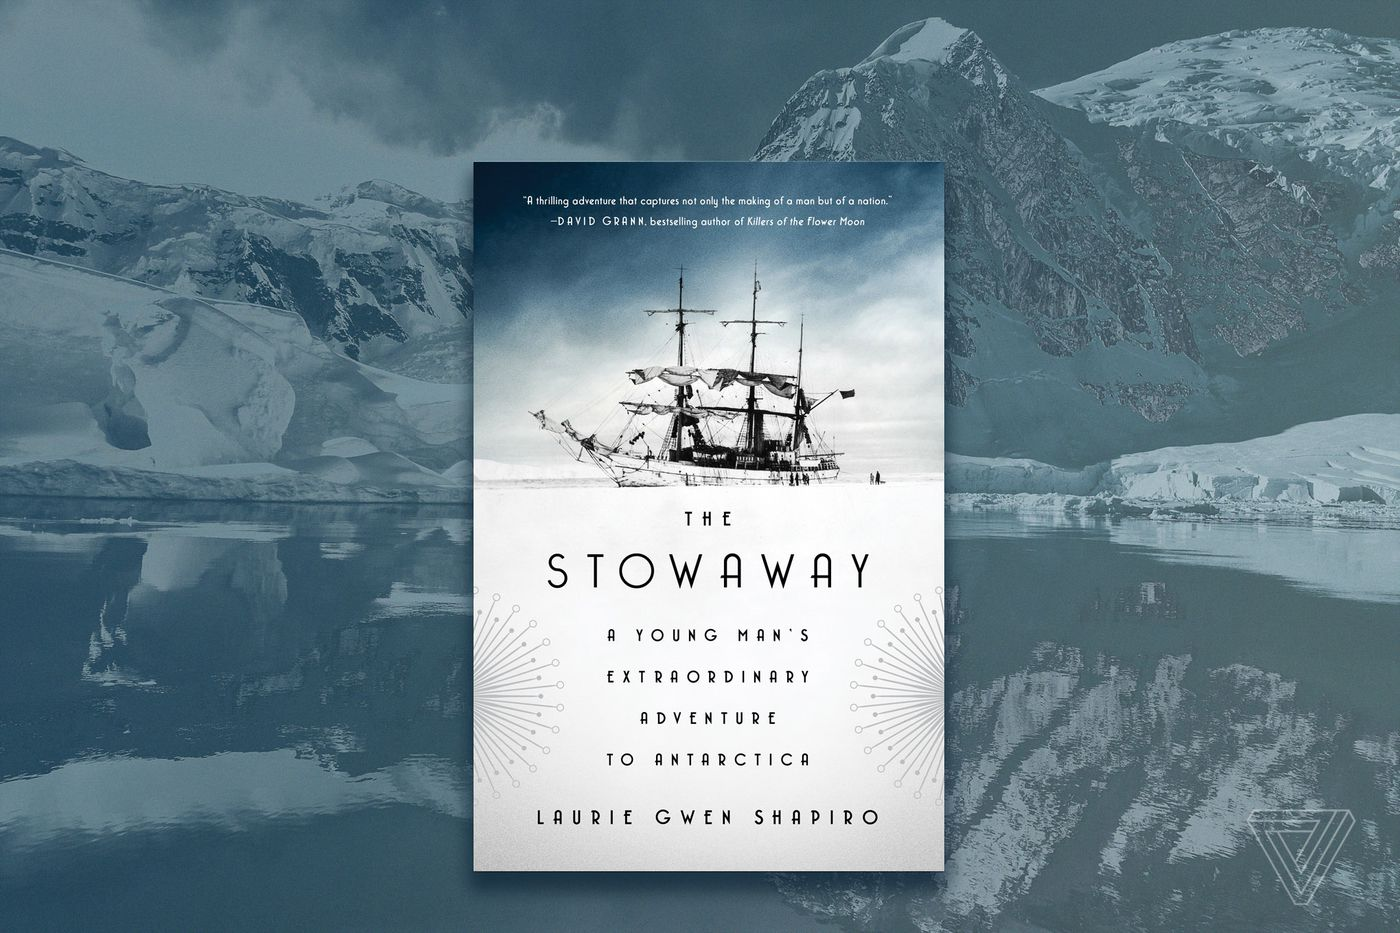 How a teenage stowaway made it to Antarctica 90 years ago